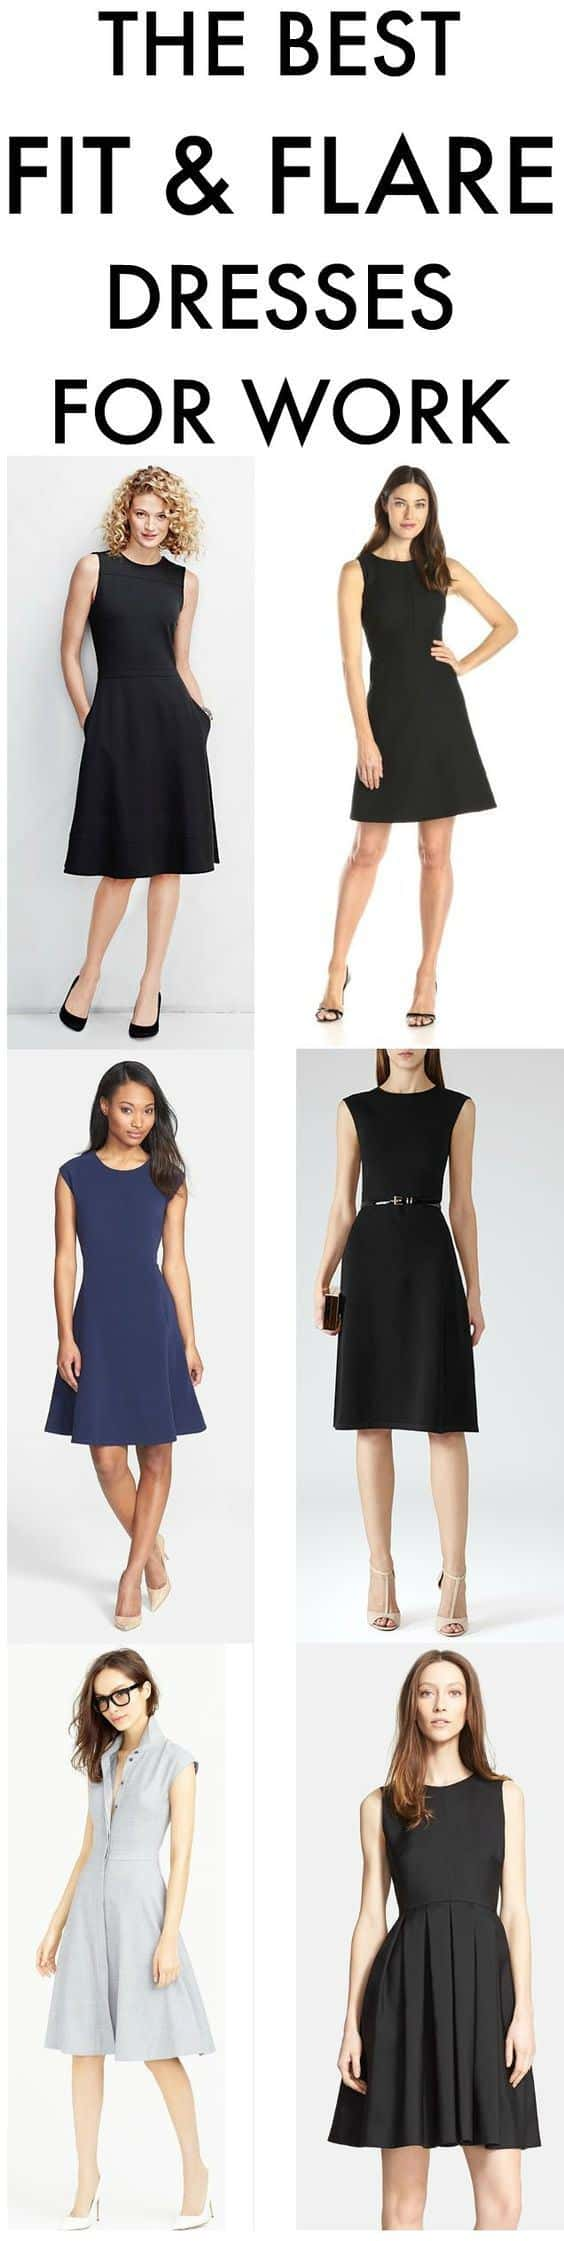 fit flare dresses for work